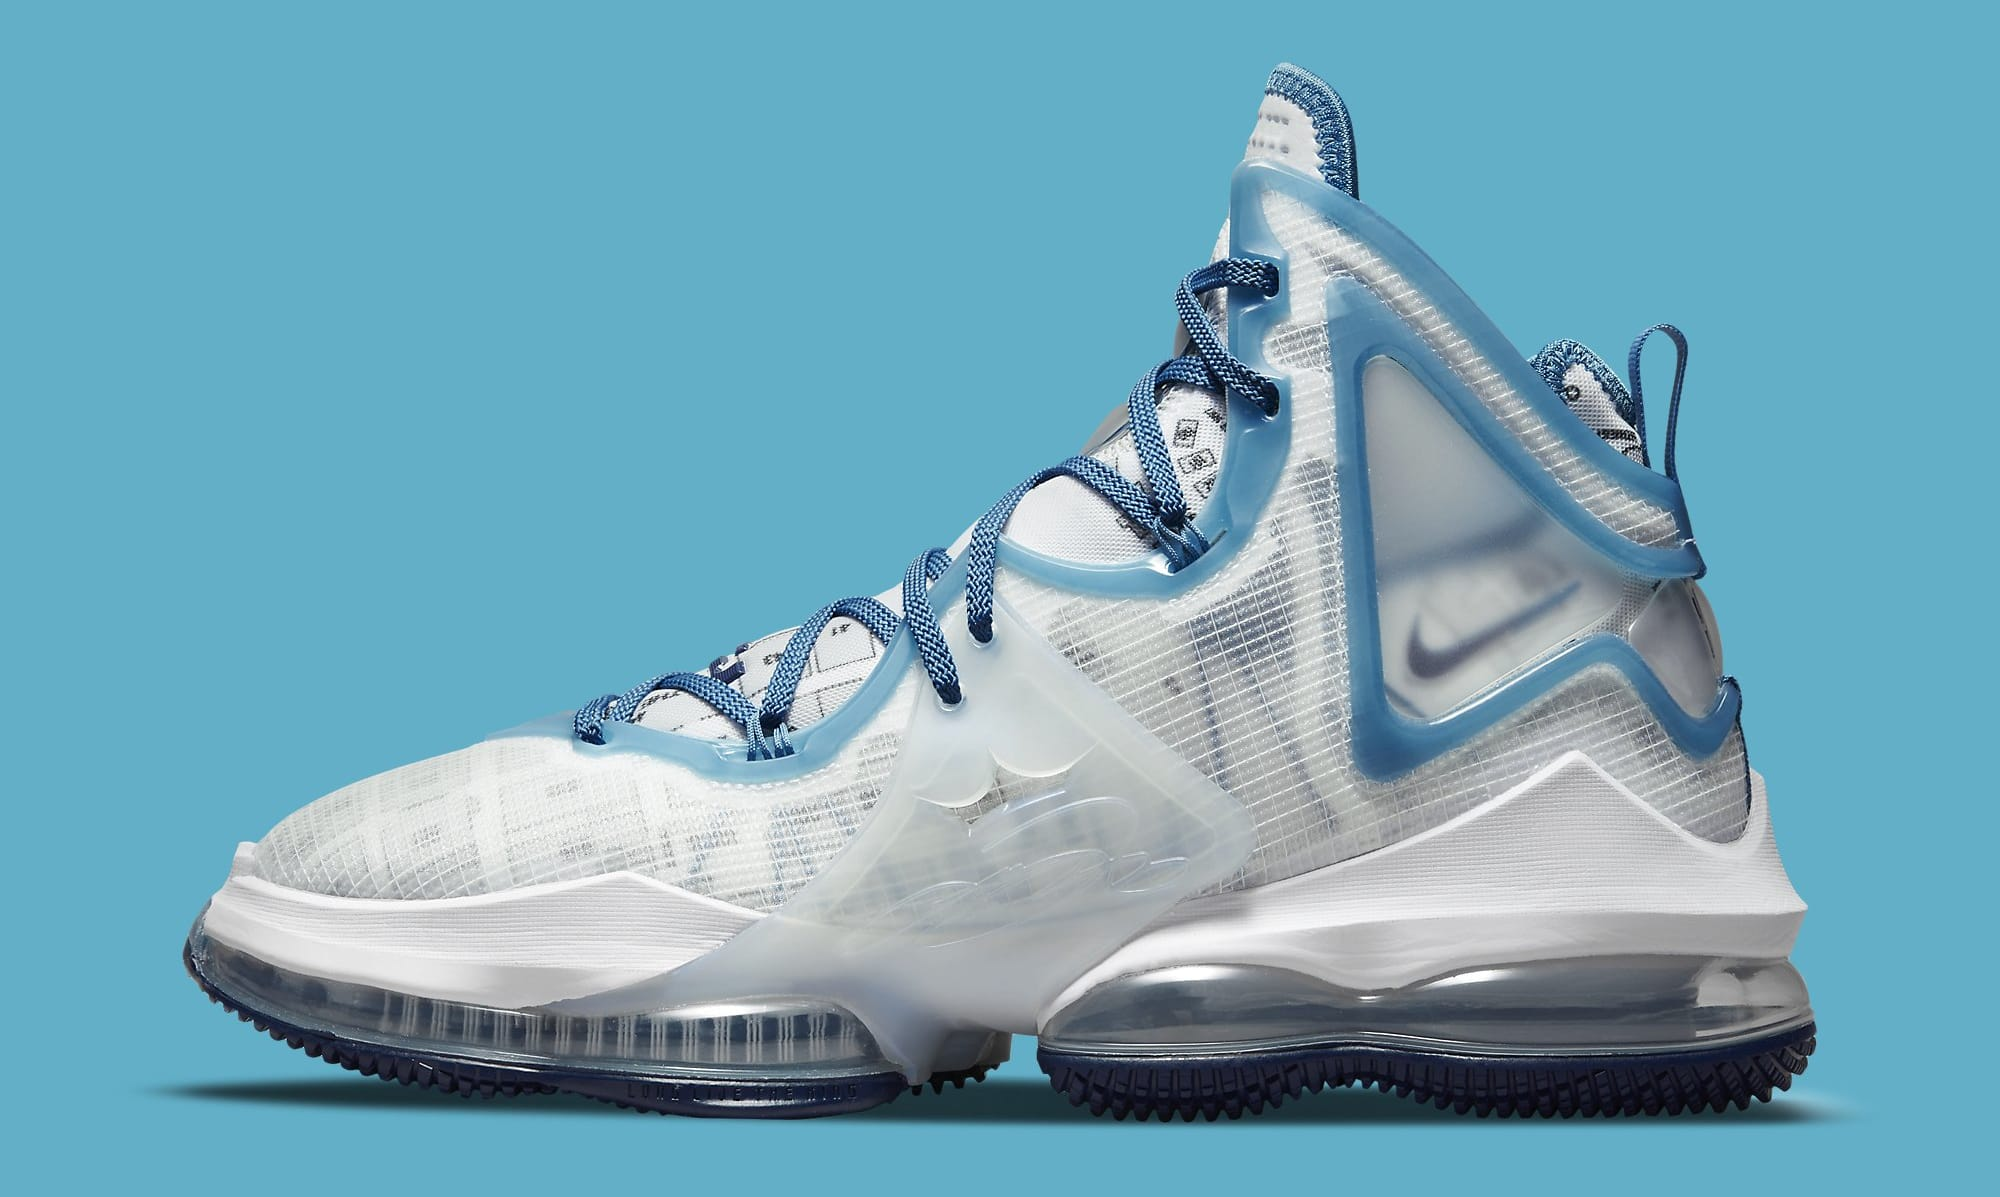 Nike LeBron 19 'Space Jam' DC9338-100 Lateral